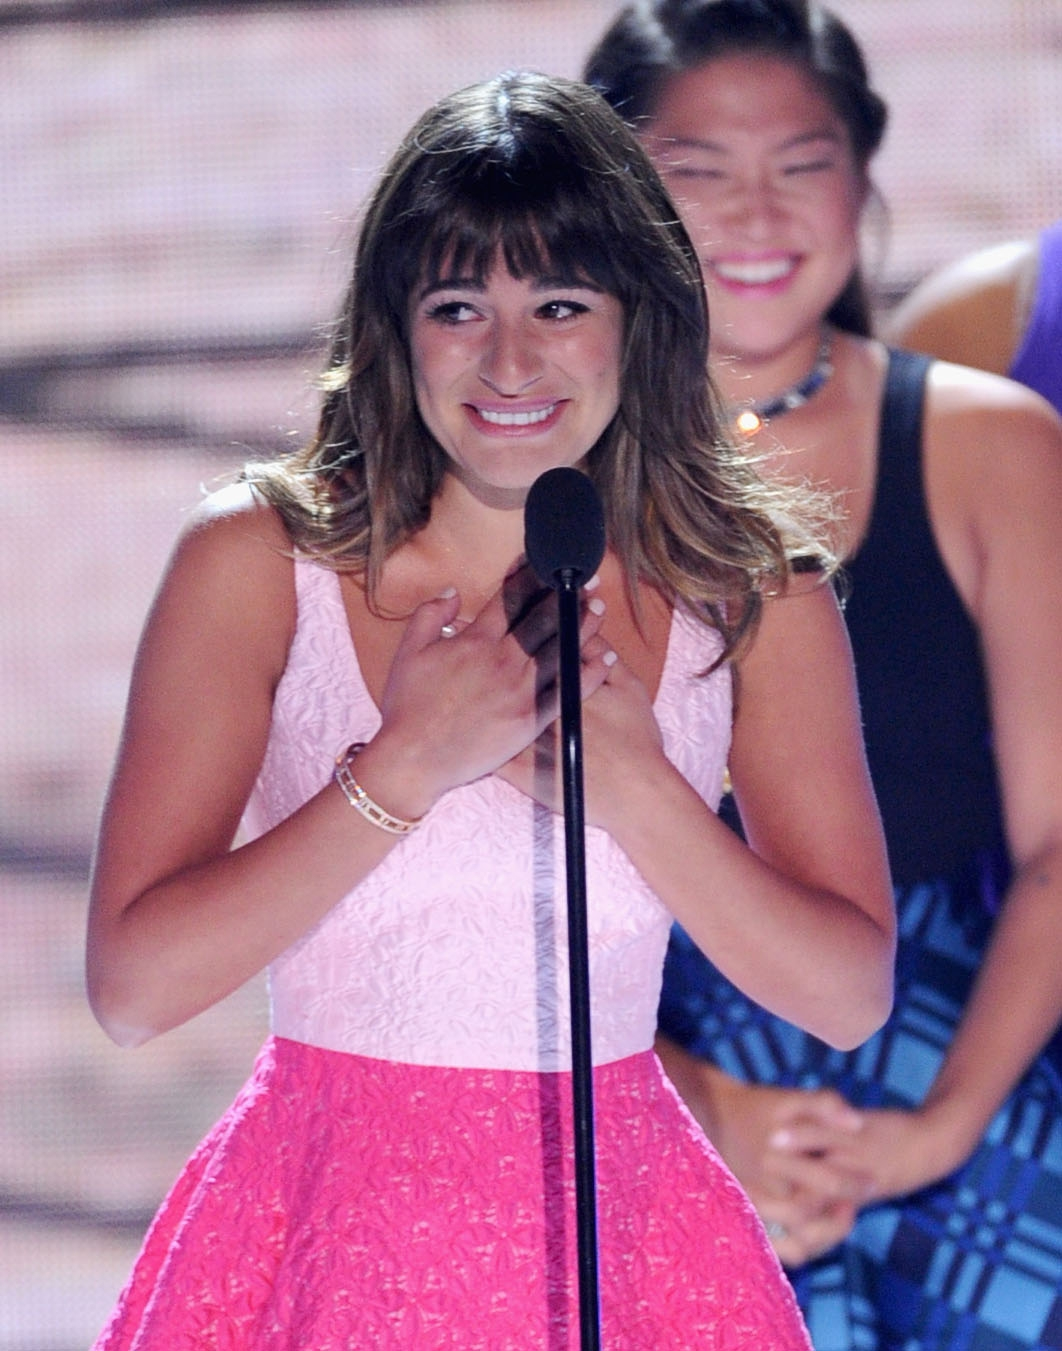 Actress Lea Michele accepting the best Comedy award for 'Glee' during the Teen Choice Awards 2013 in Universal City, Calif., August 11, 2013 (Photo by Kevin Winter/Getty Images)